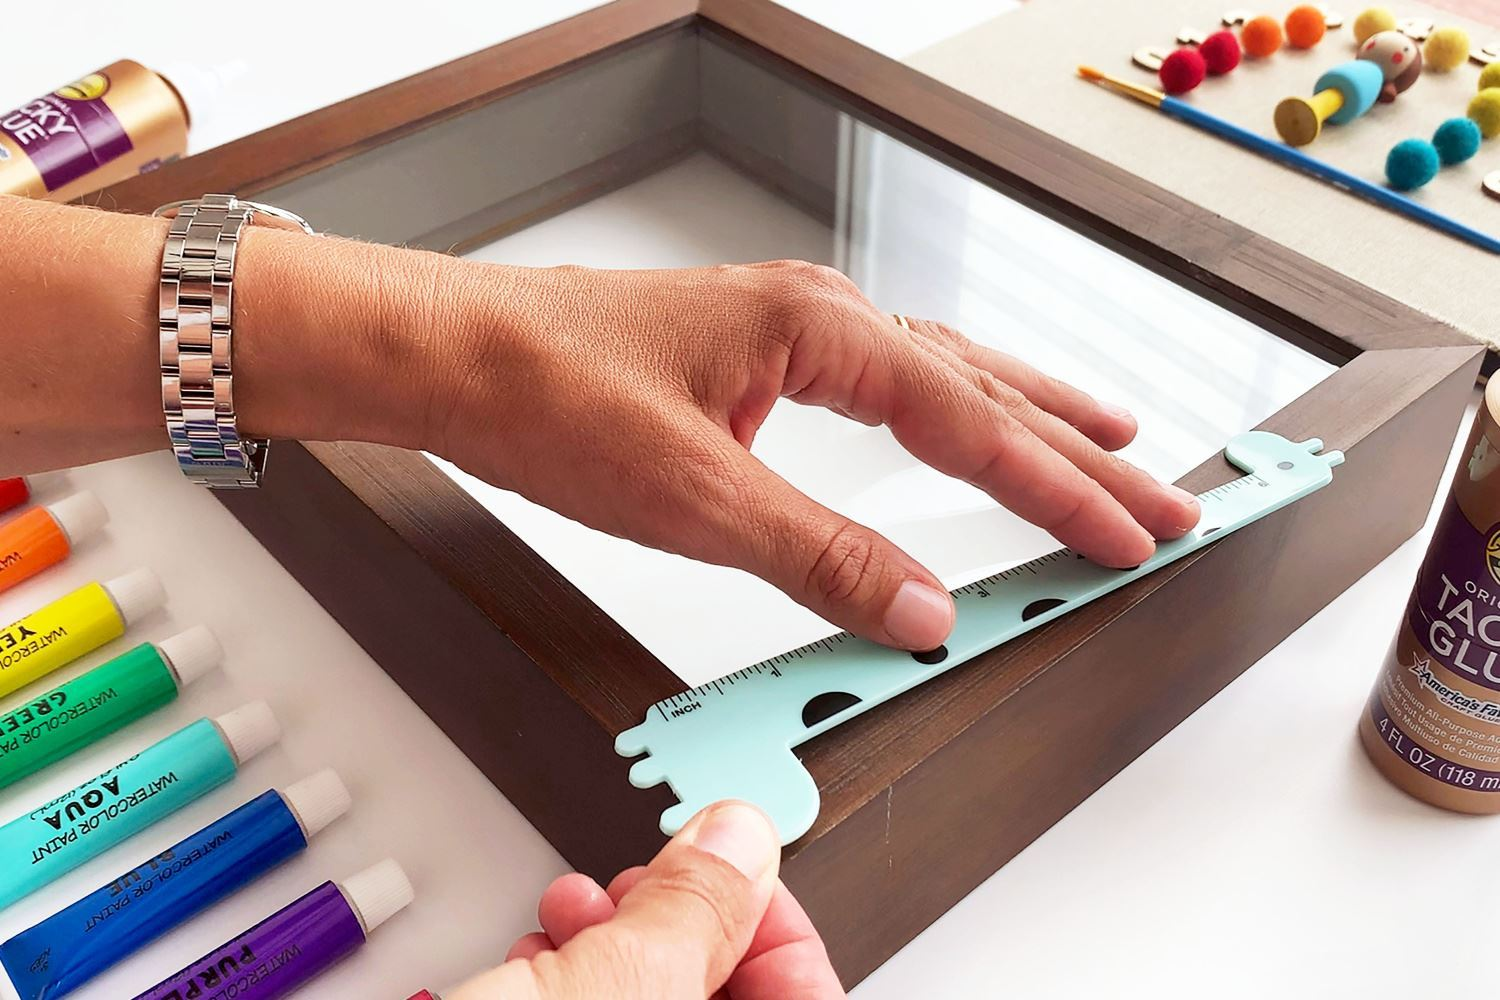 Continue gluing school-themed items to frame